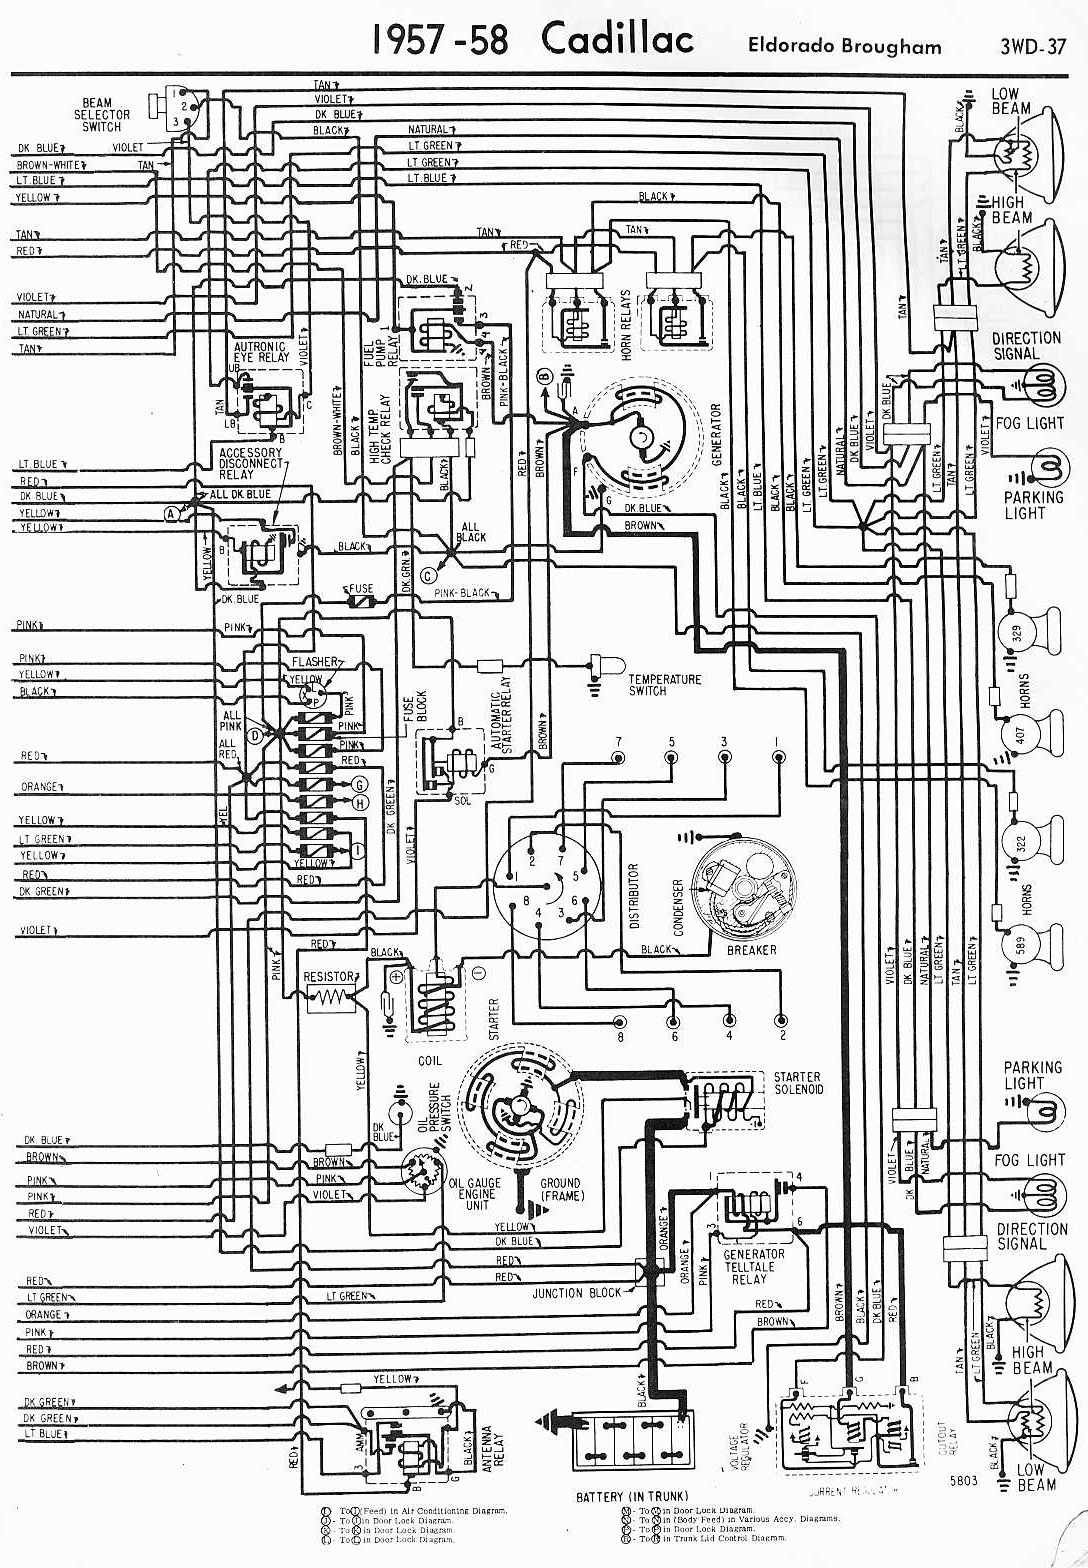 Service Owner Manual 1995 Ford Ranger Wiring Diagram